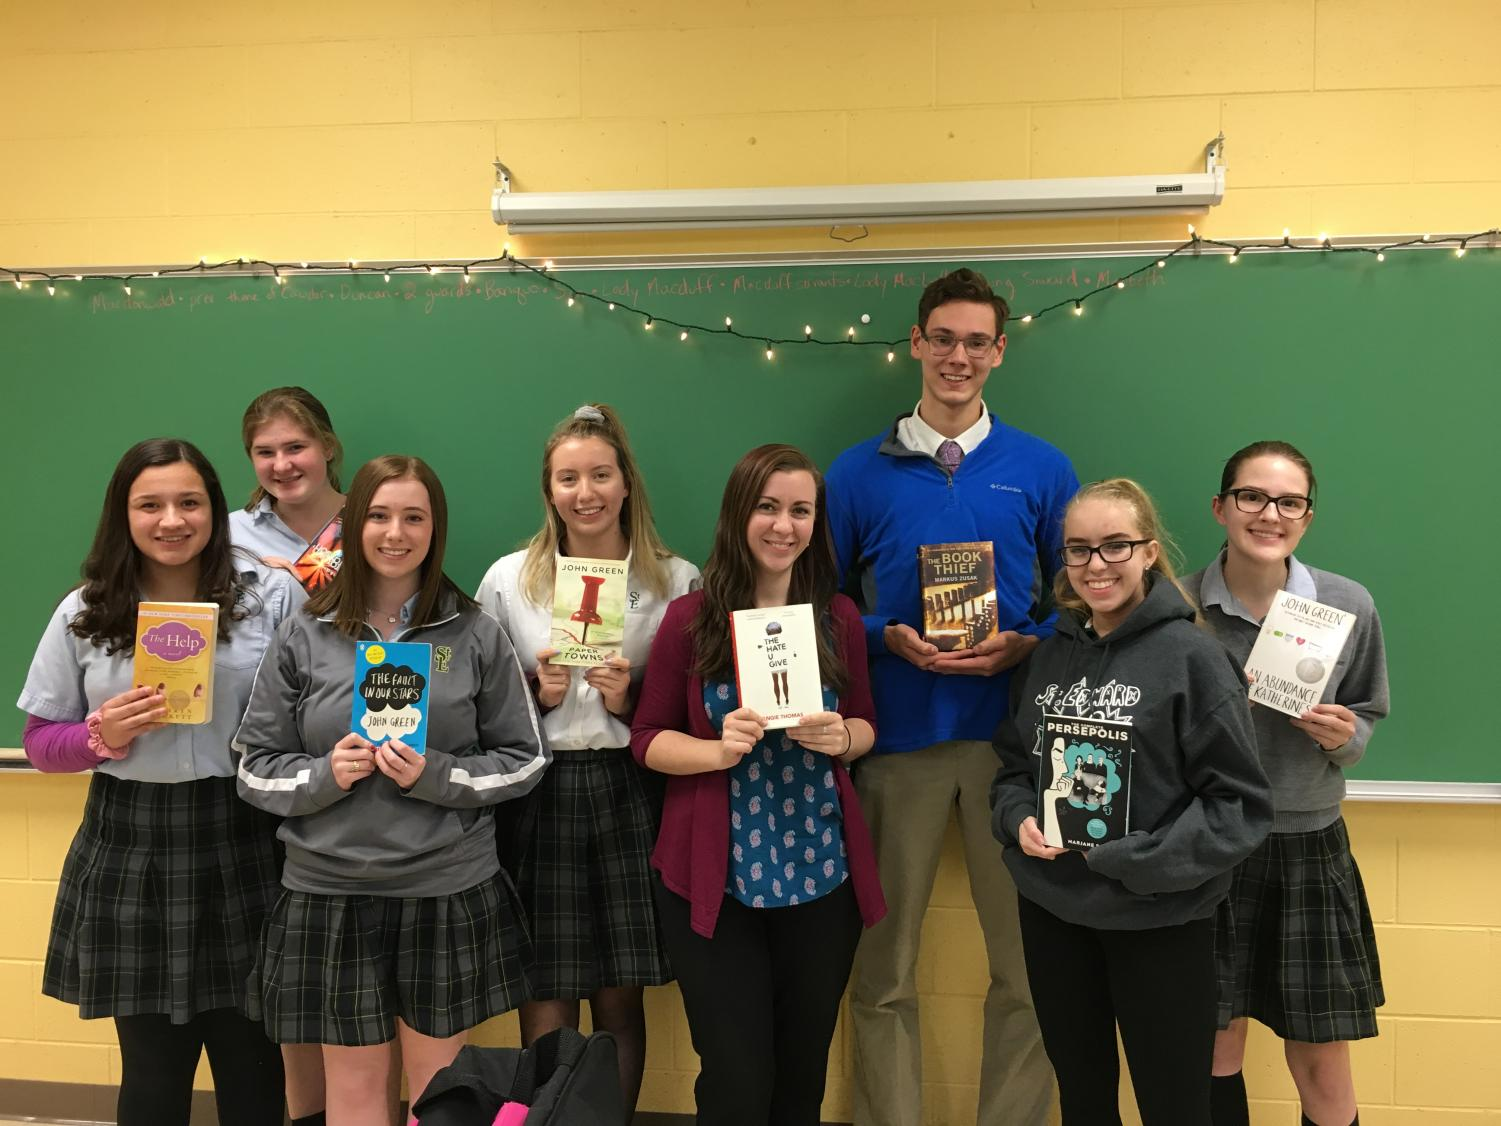 Members of Book Club, posing with their favorite books.